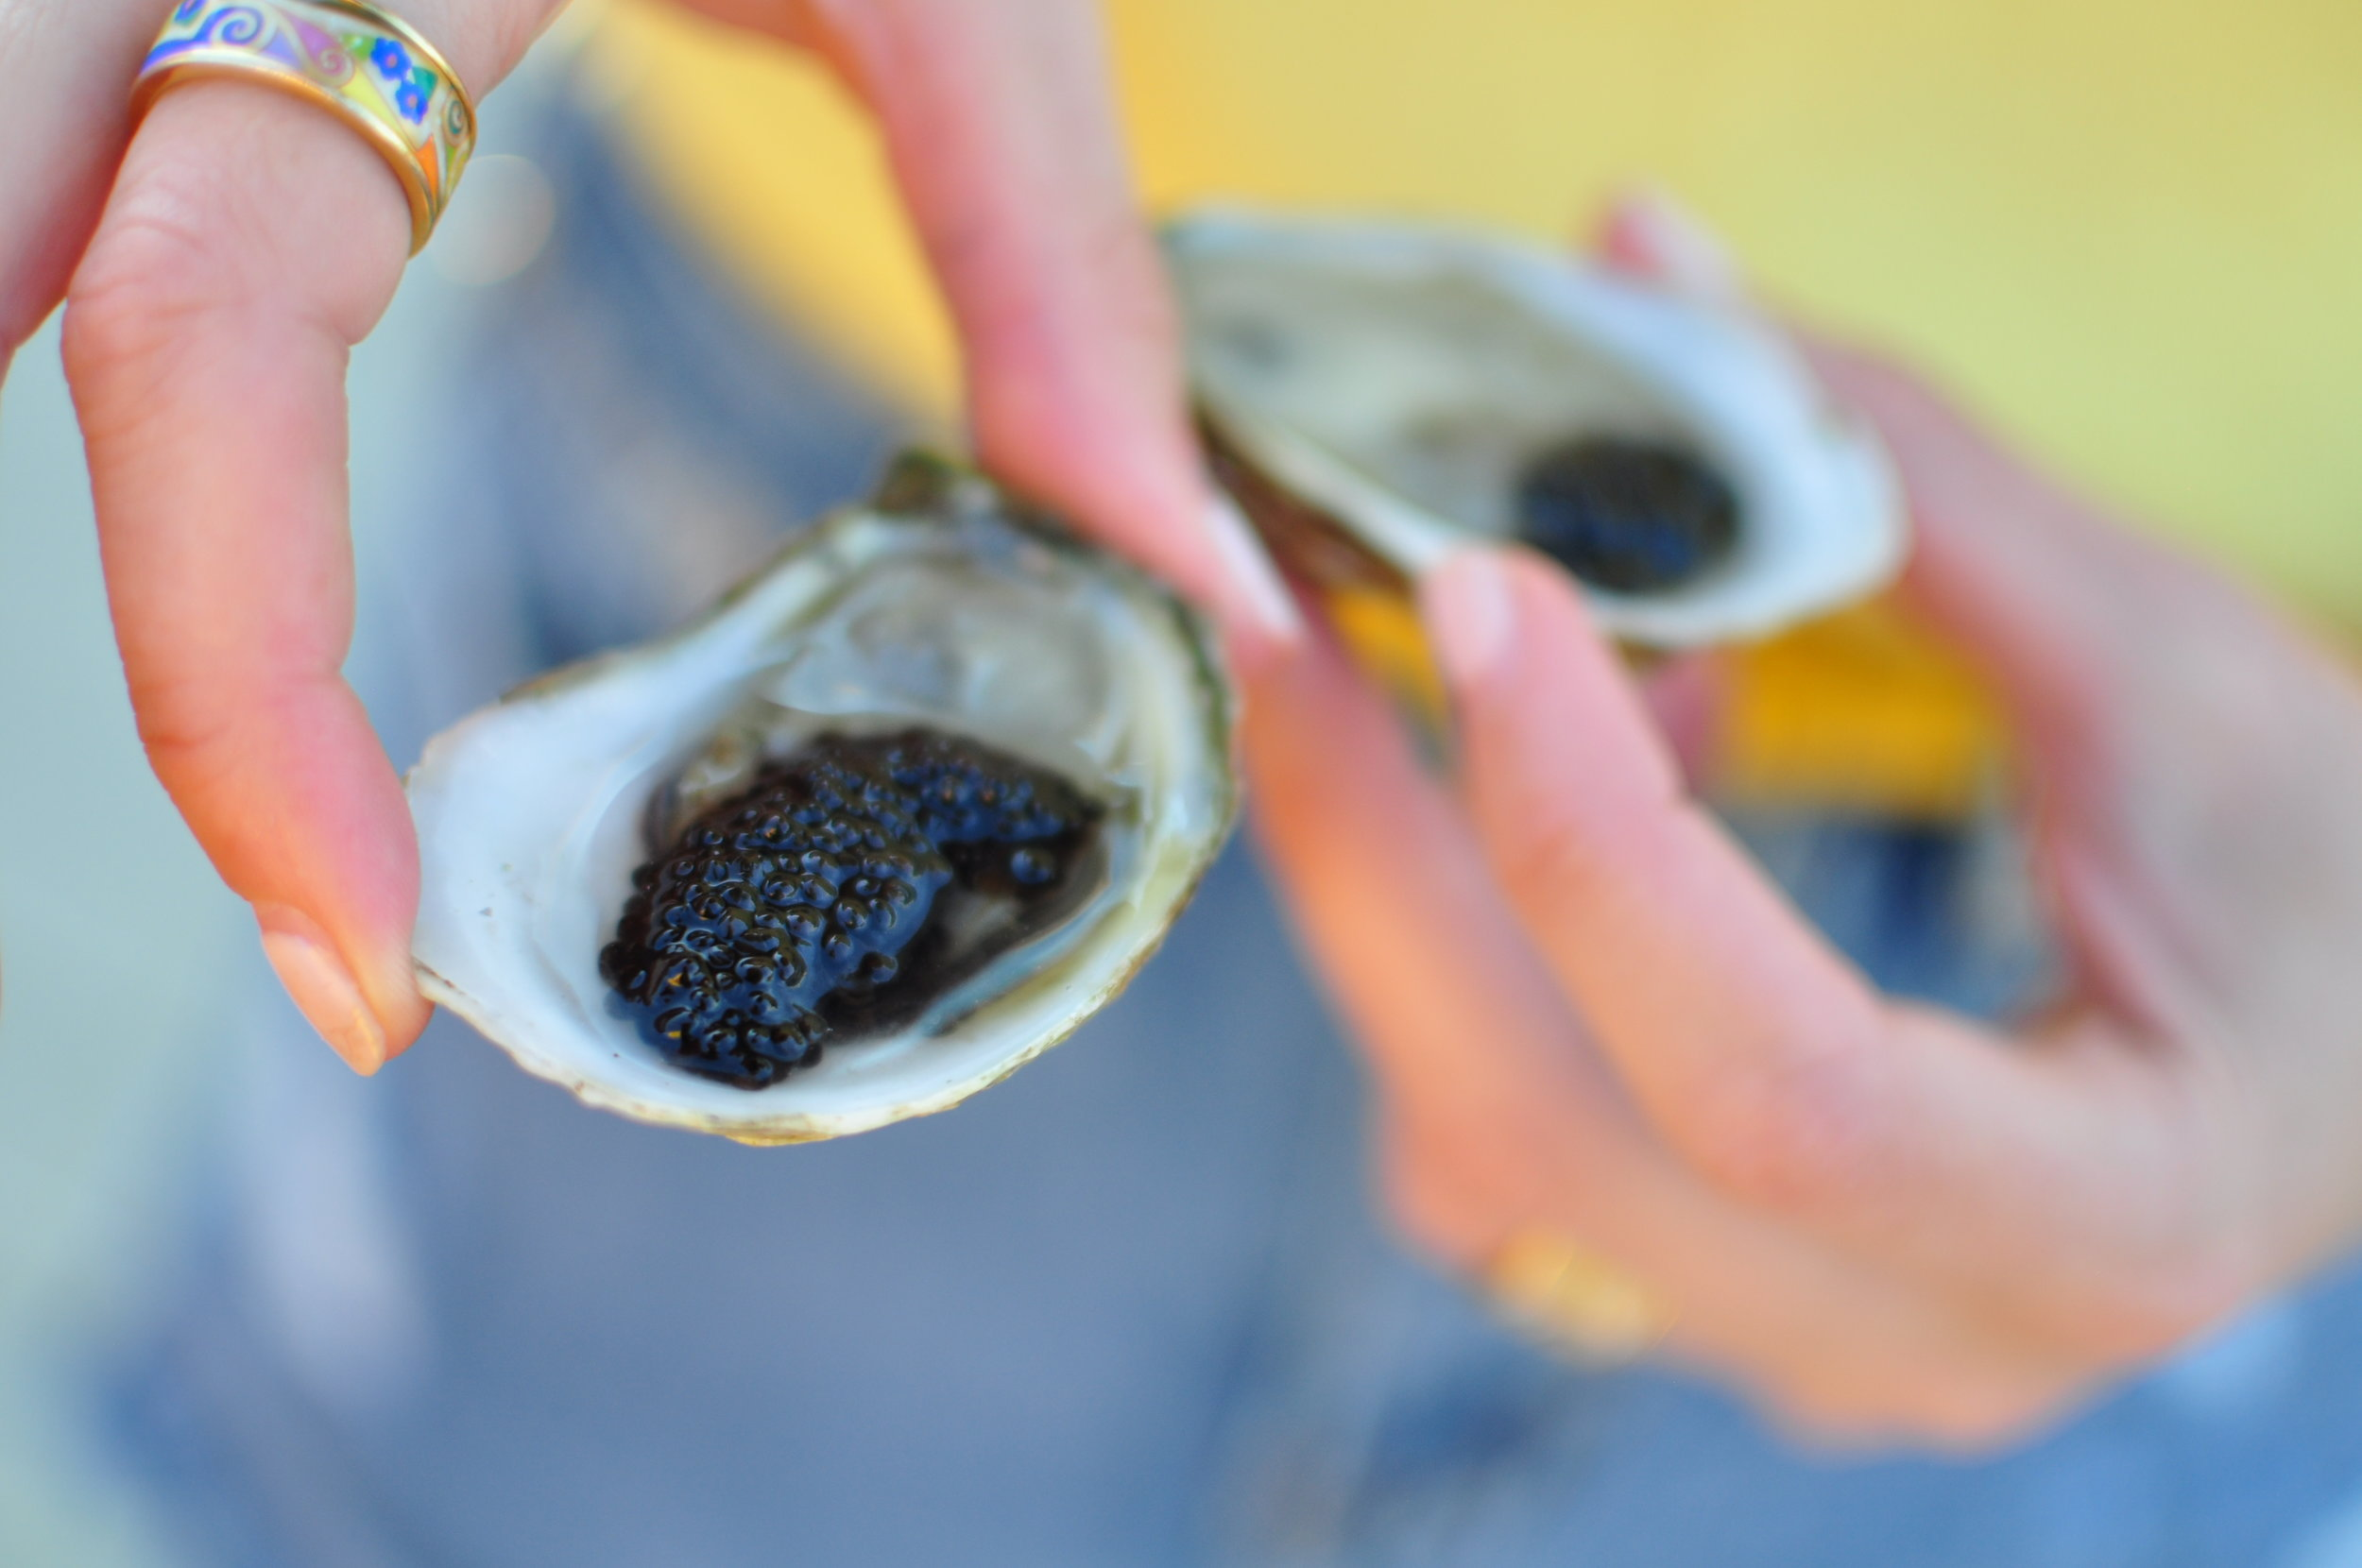 EBO Yellow Party. Caviar on oysters. Photo cred: Warwick Ombler of Lady Oyster.